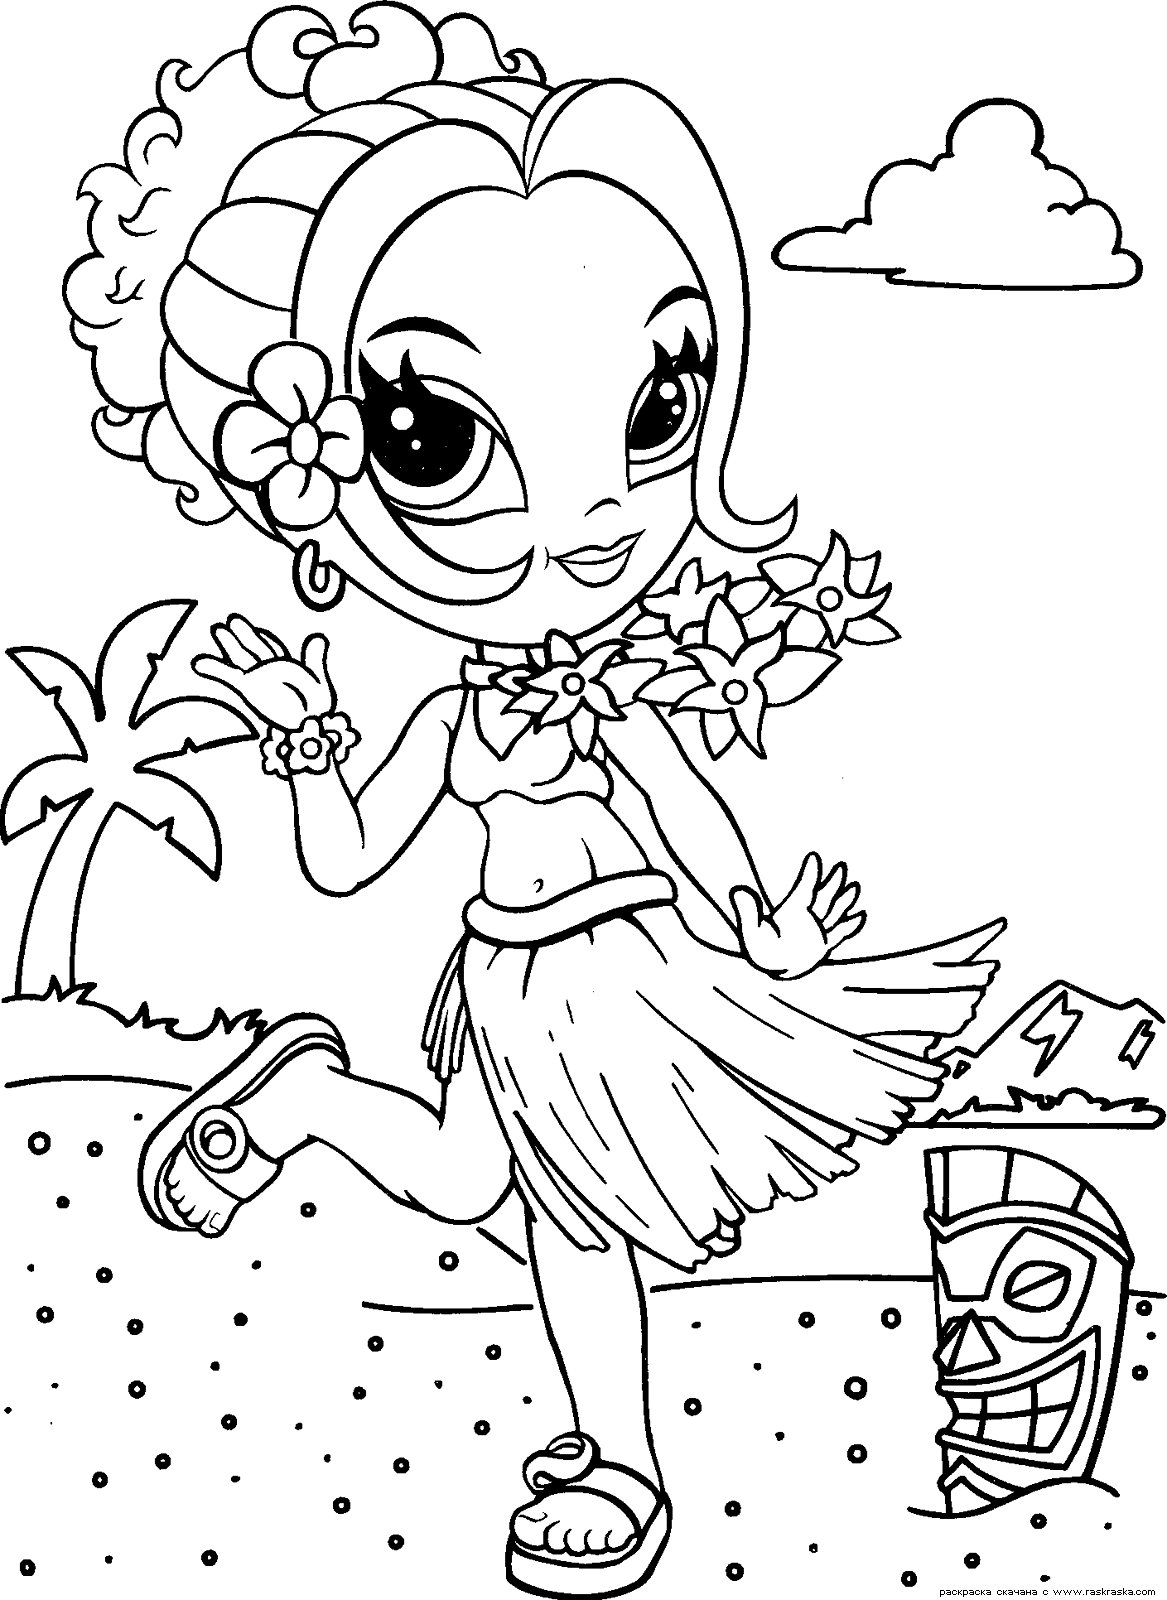 free coloring pages for kids kids page butterfly coloring pages printable colouring pages free coloring for kids